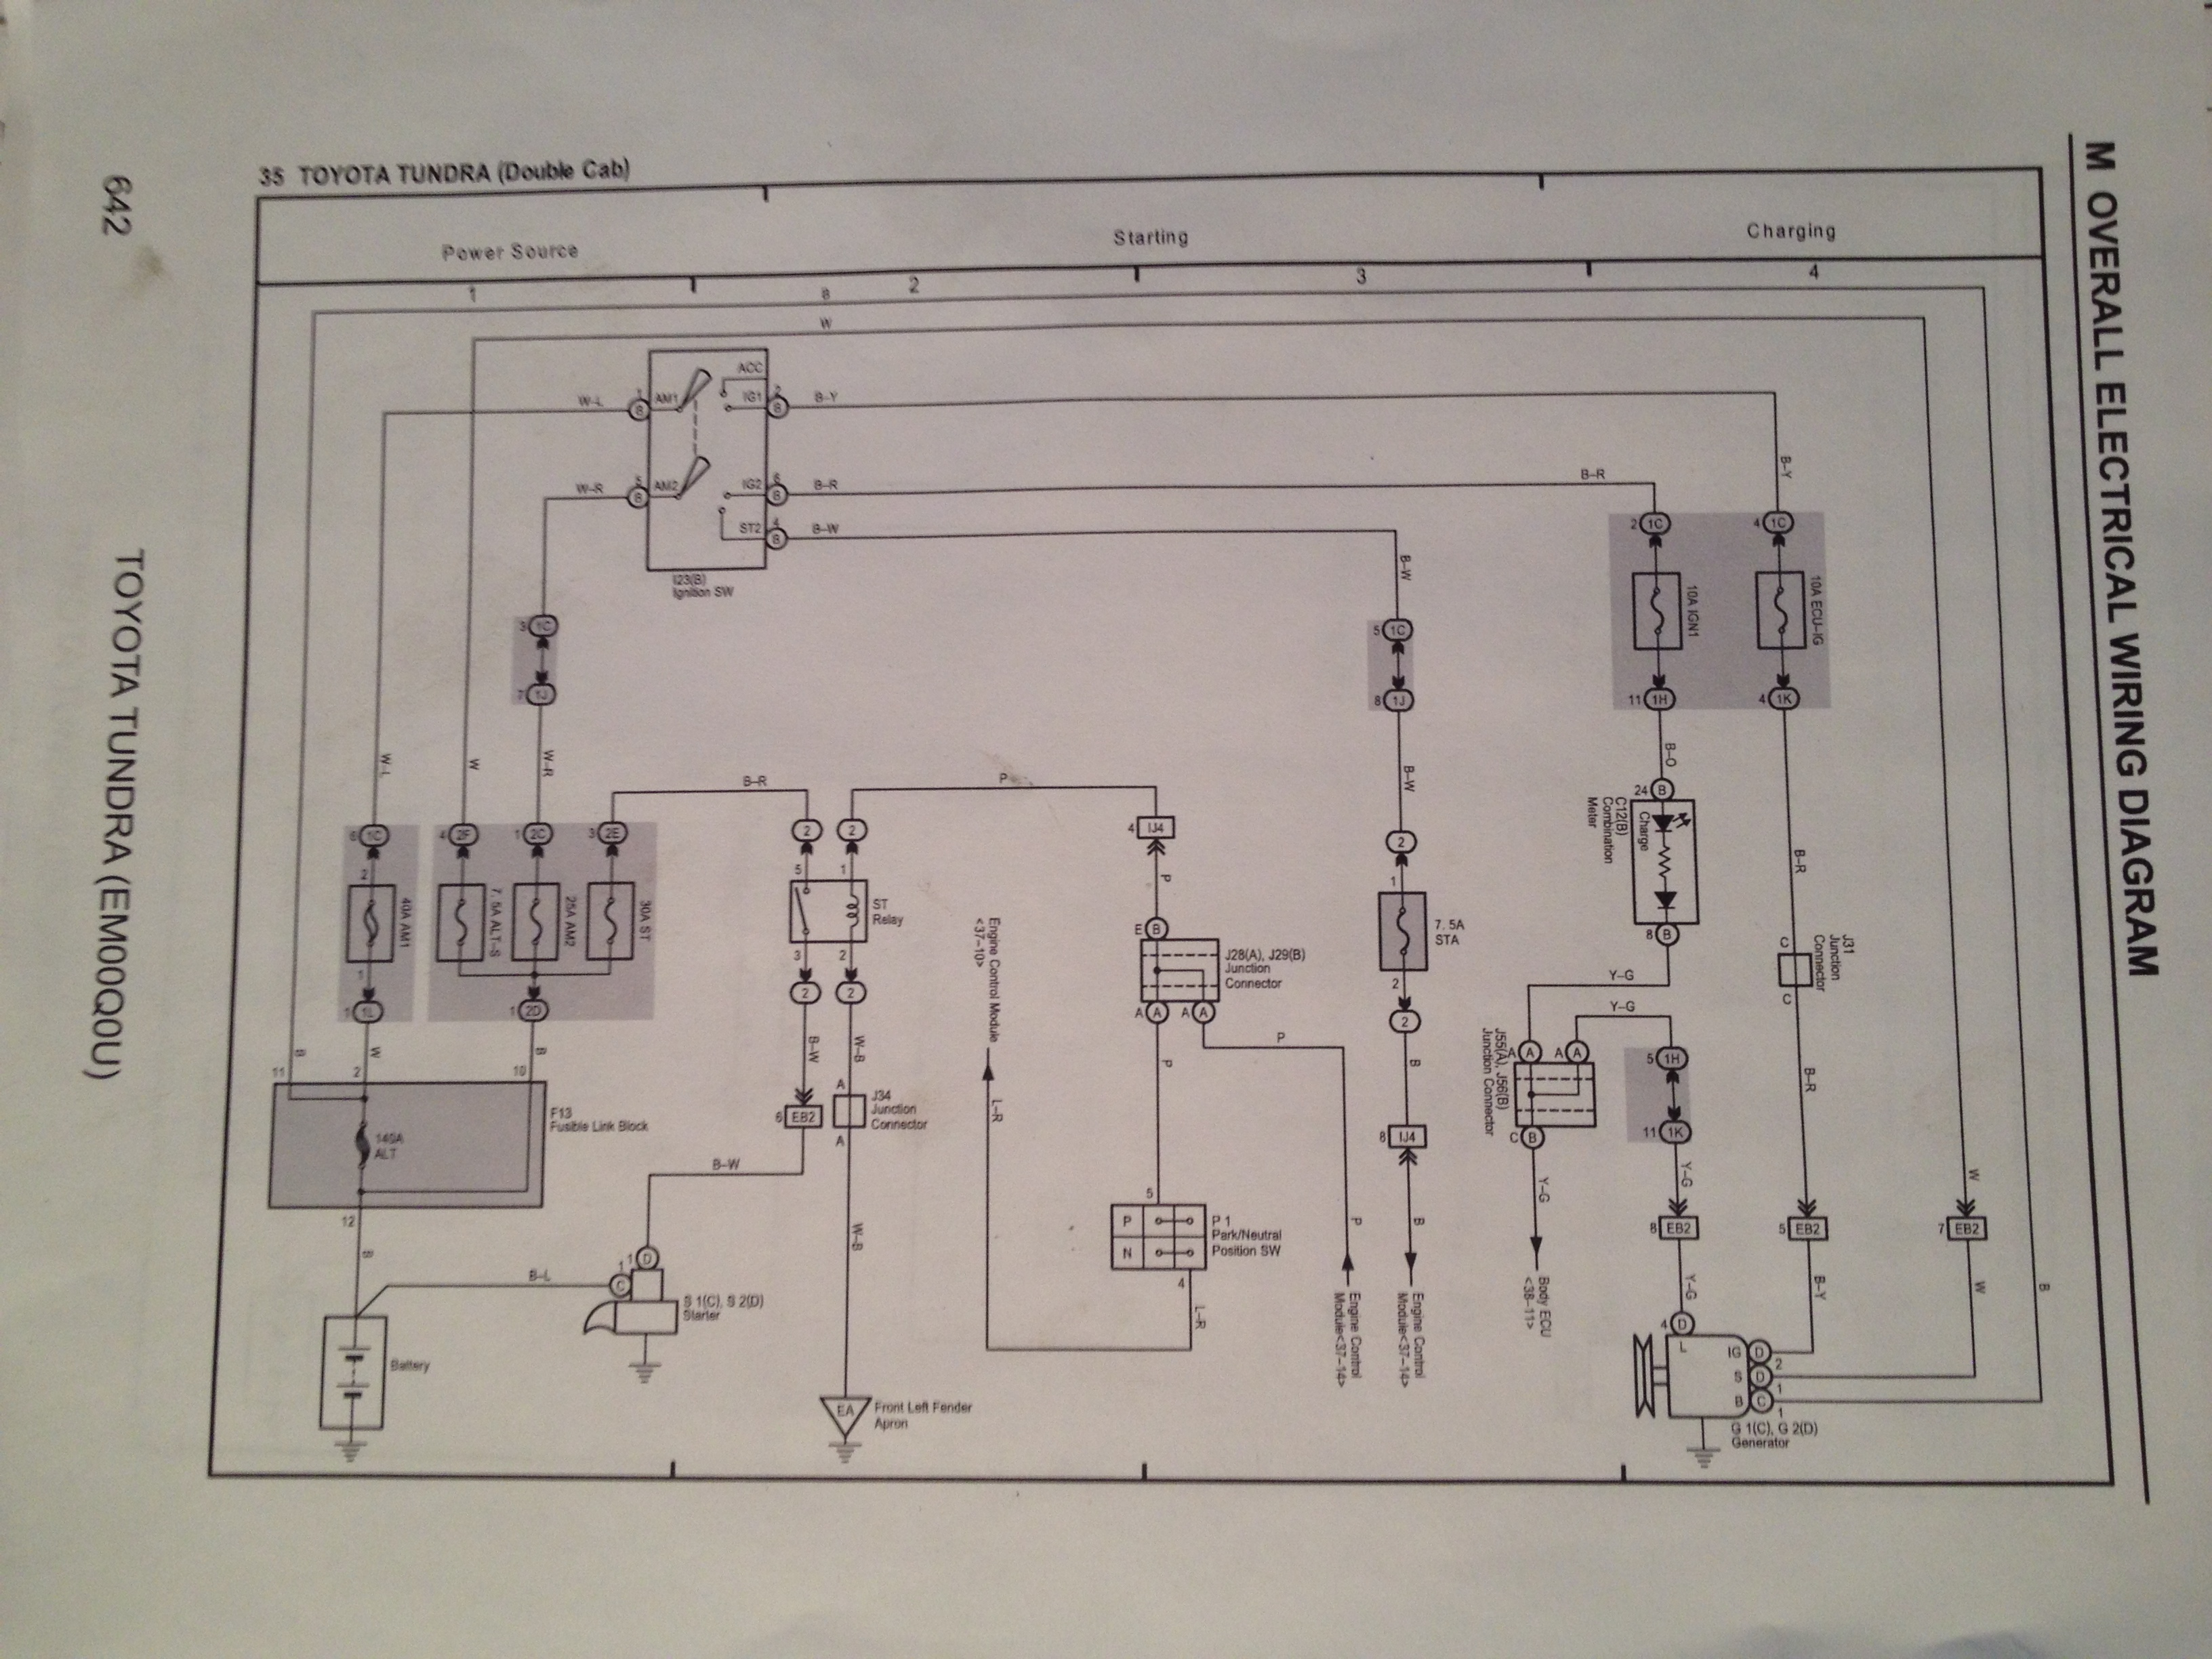 2013 12 06_190243_030 im stuck i bought a rolled over tundra 2005 double cab 4x4 v8 2013 tundra wiring diagram at gsmportal.co